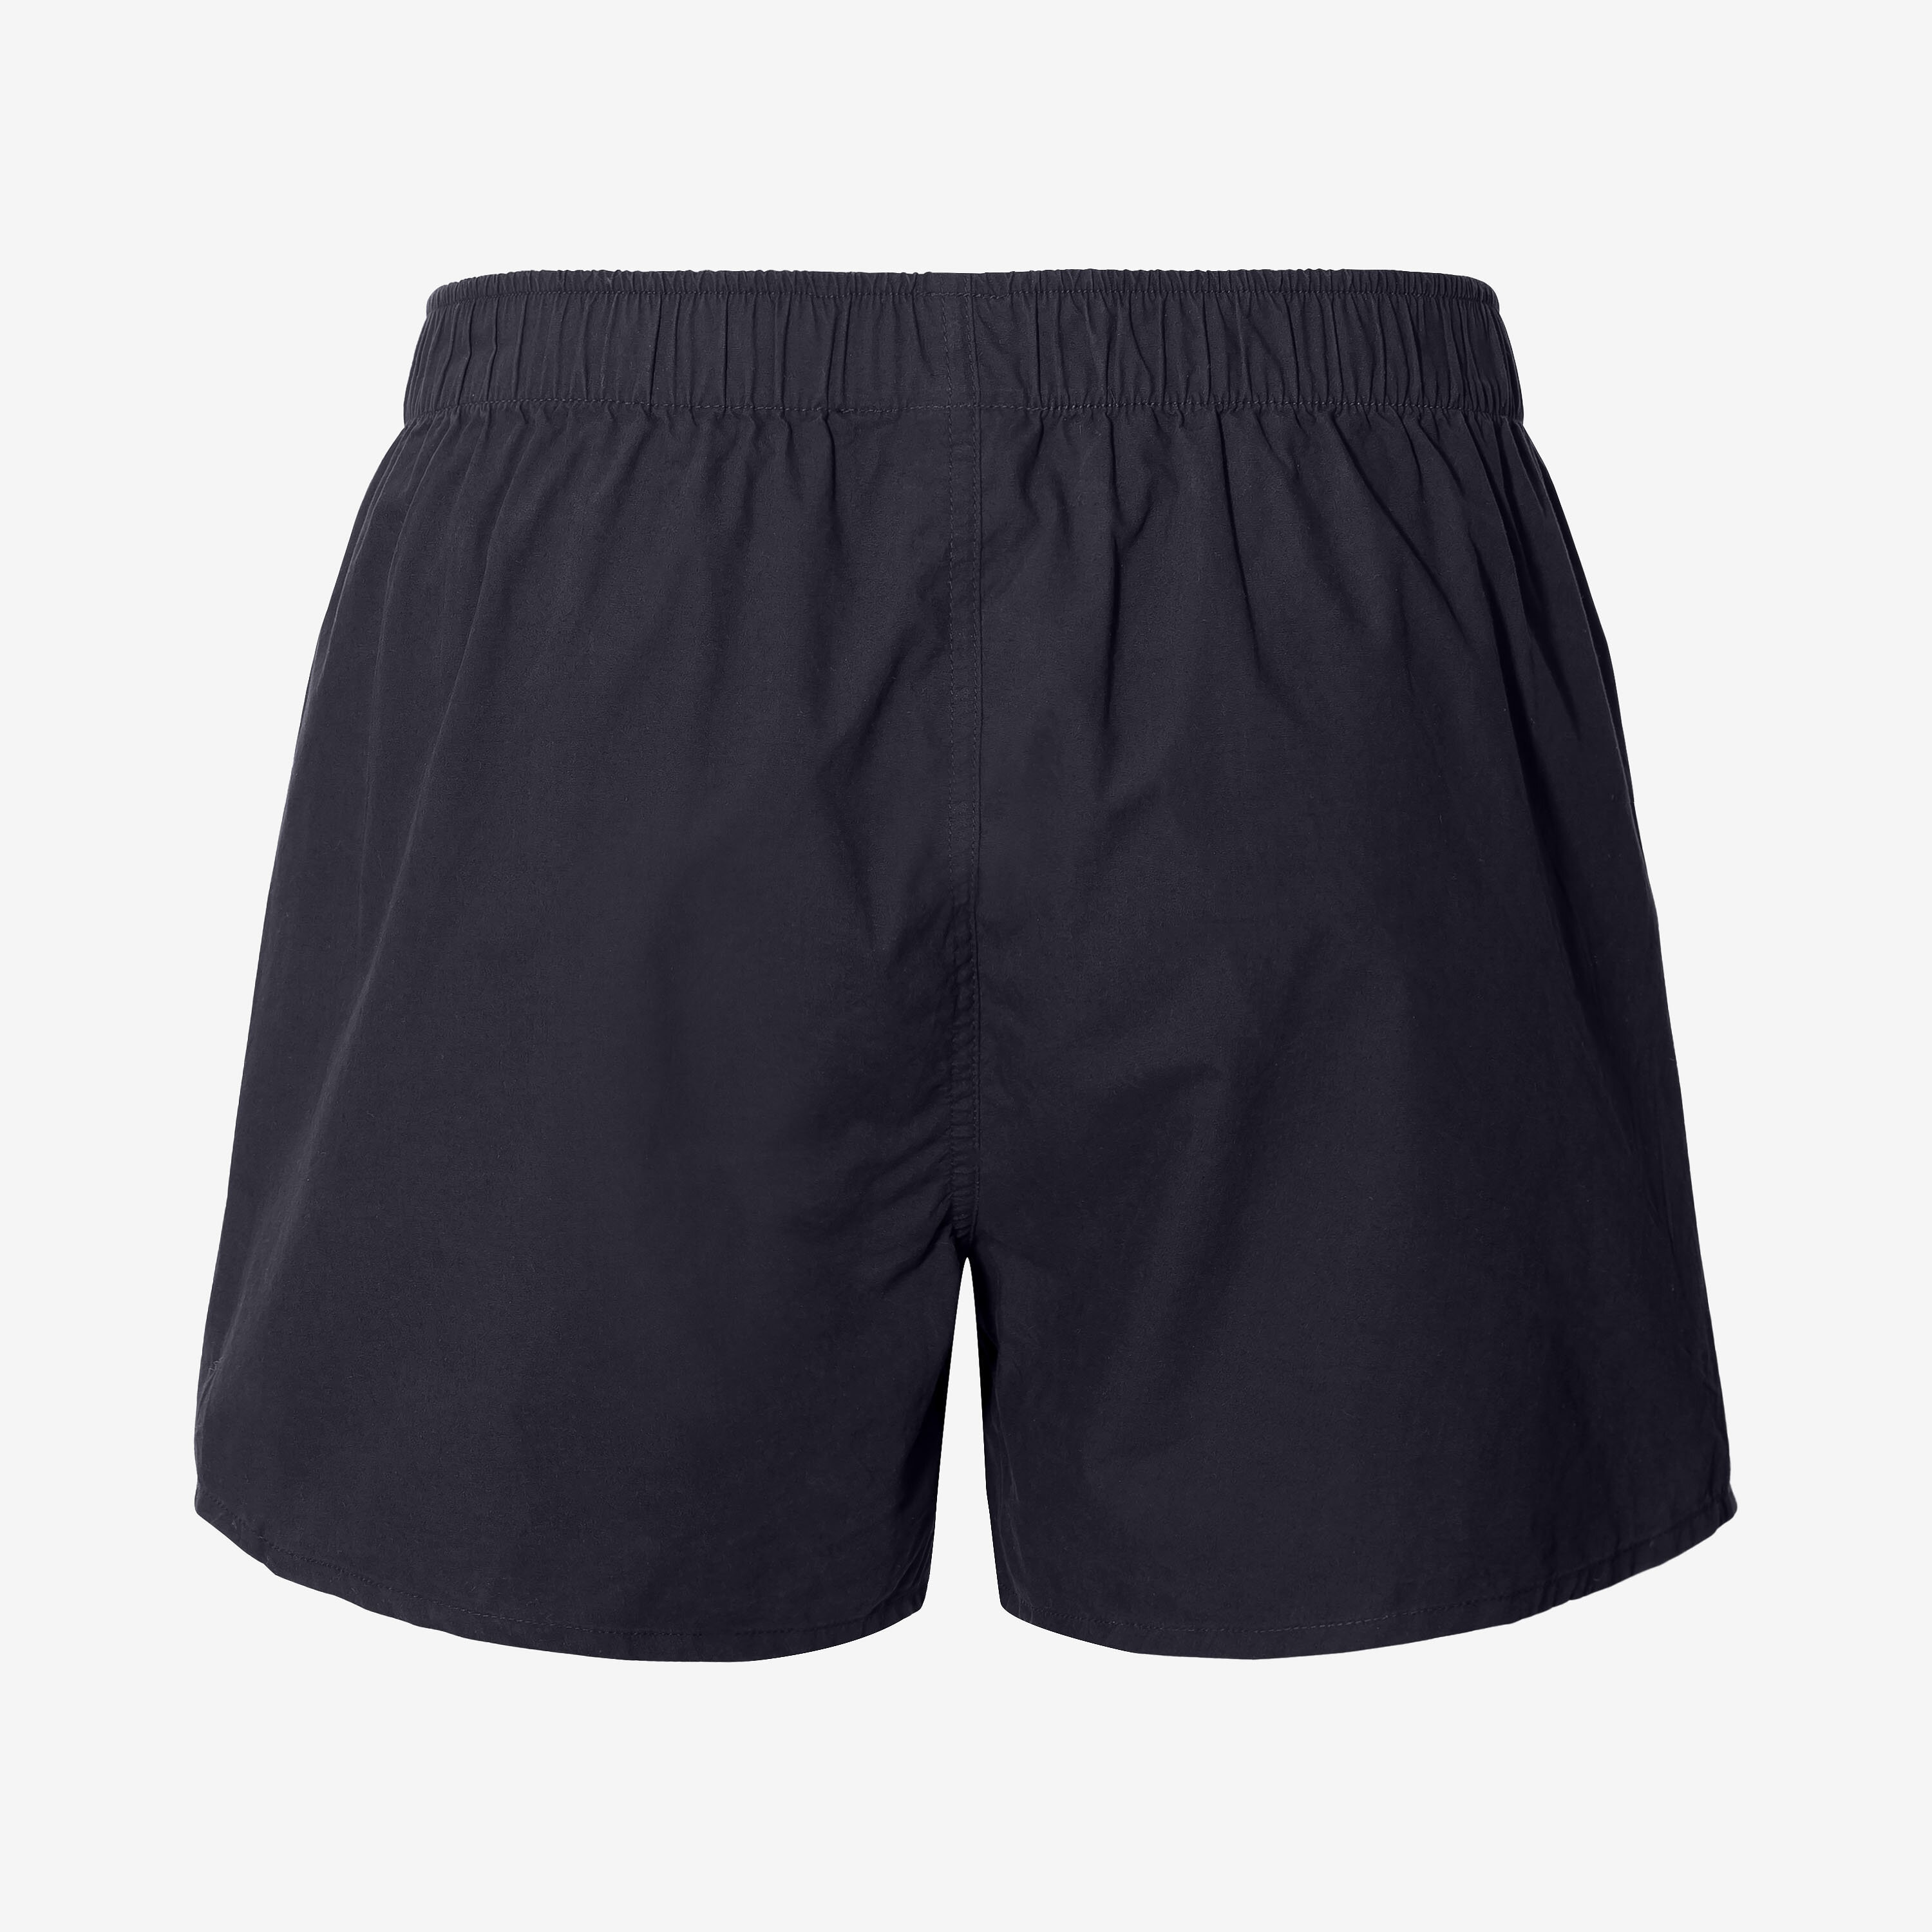 203204_Man_Boxer-Short_dark-navy_CO-B